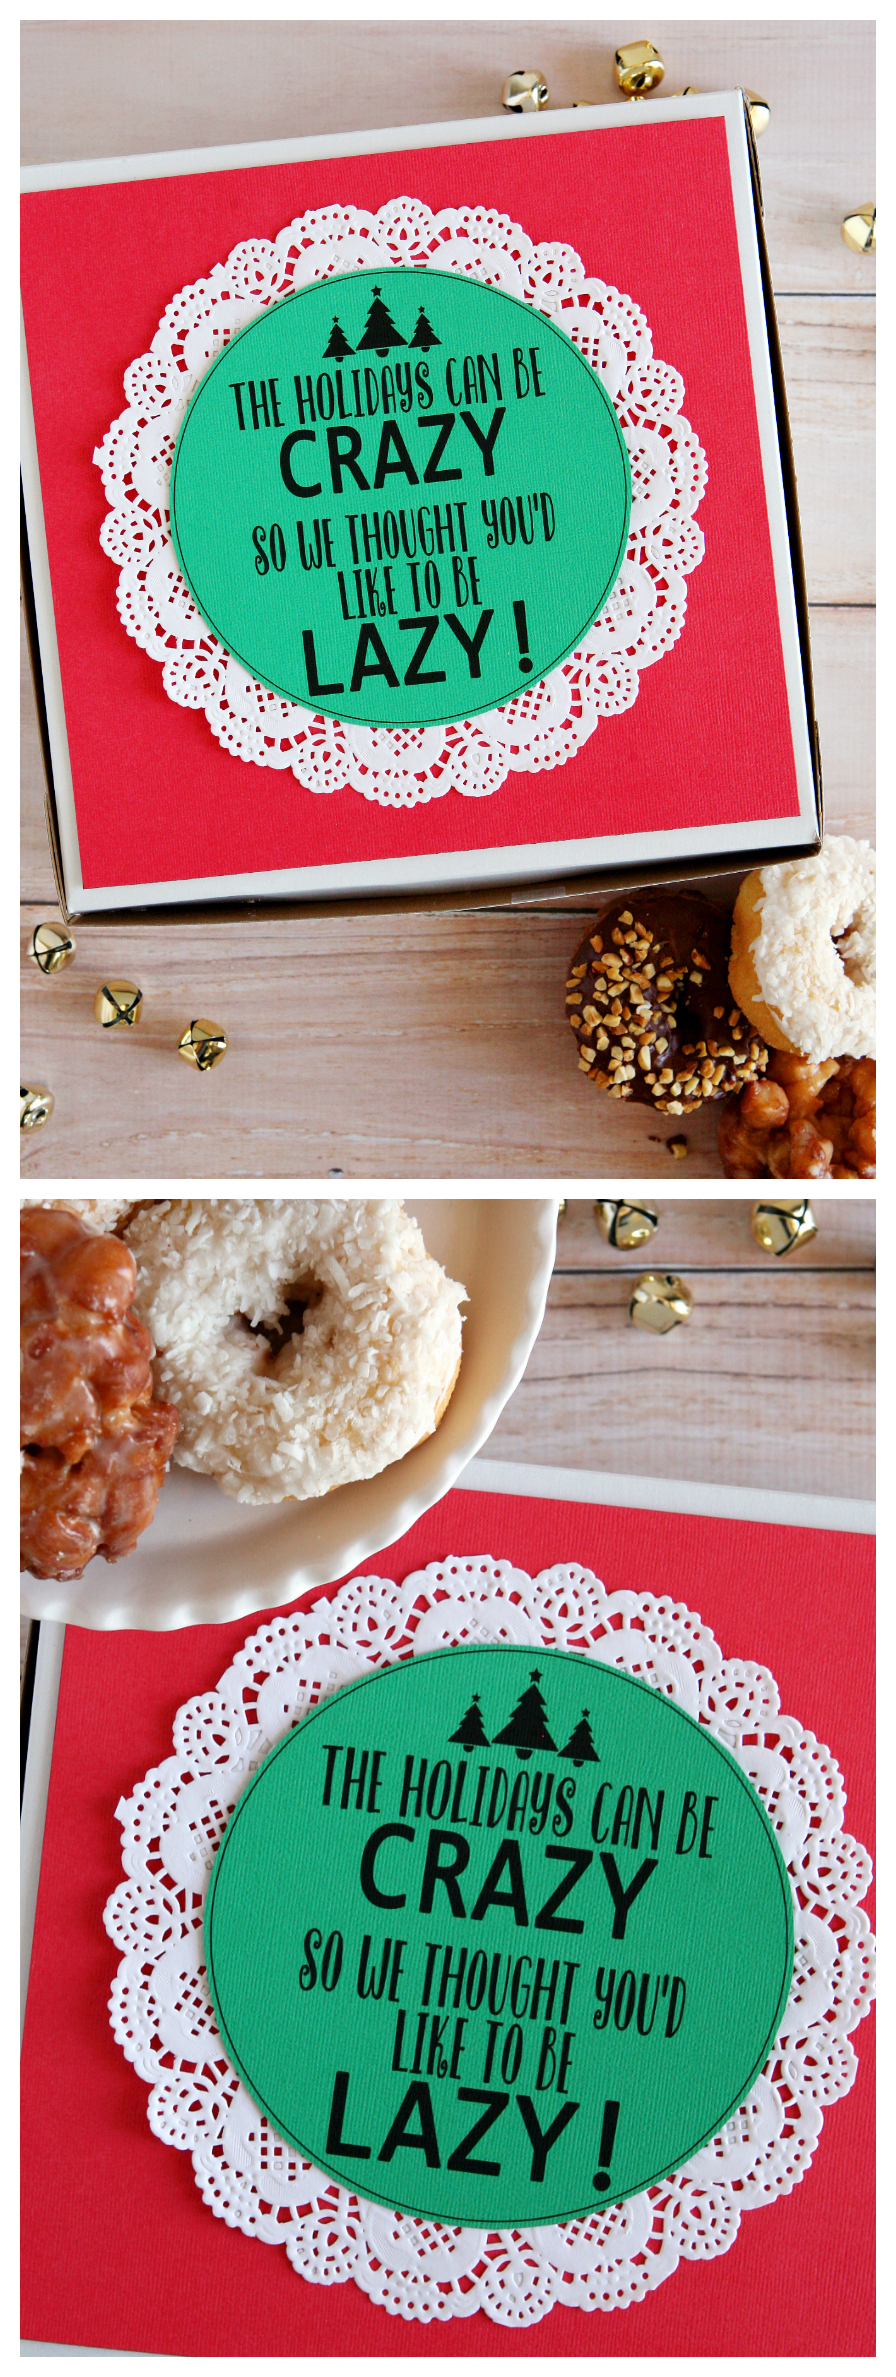 The Holiday Can Be Crazy Se Thought You'd Like To Be Lazy! | Christmas Neighbor Gift Idea